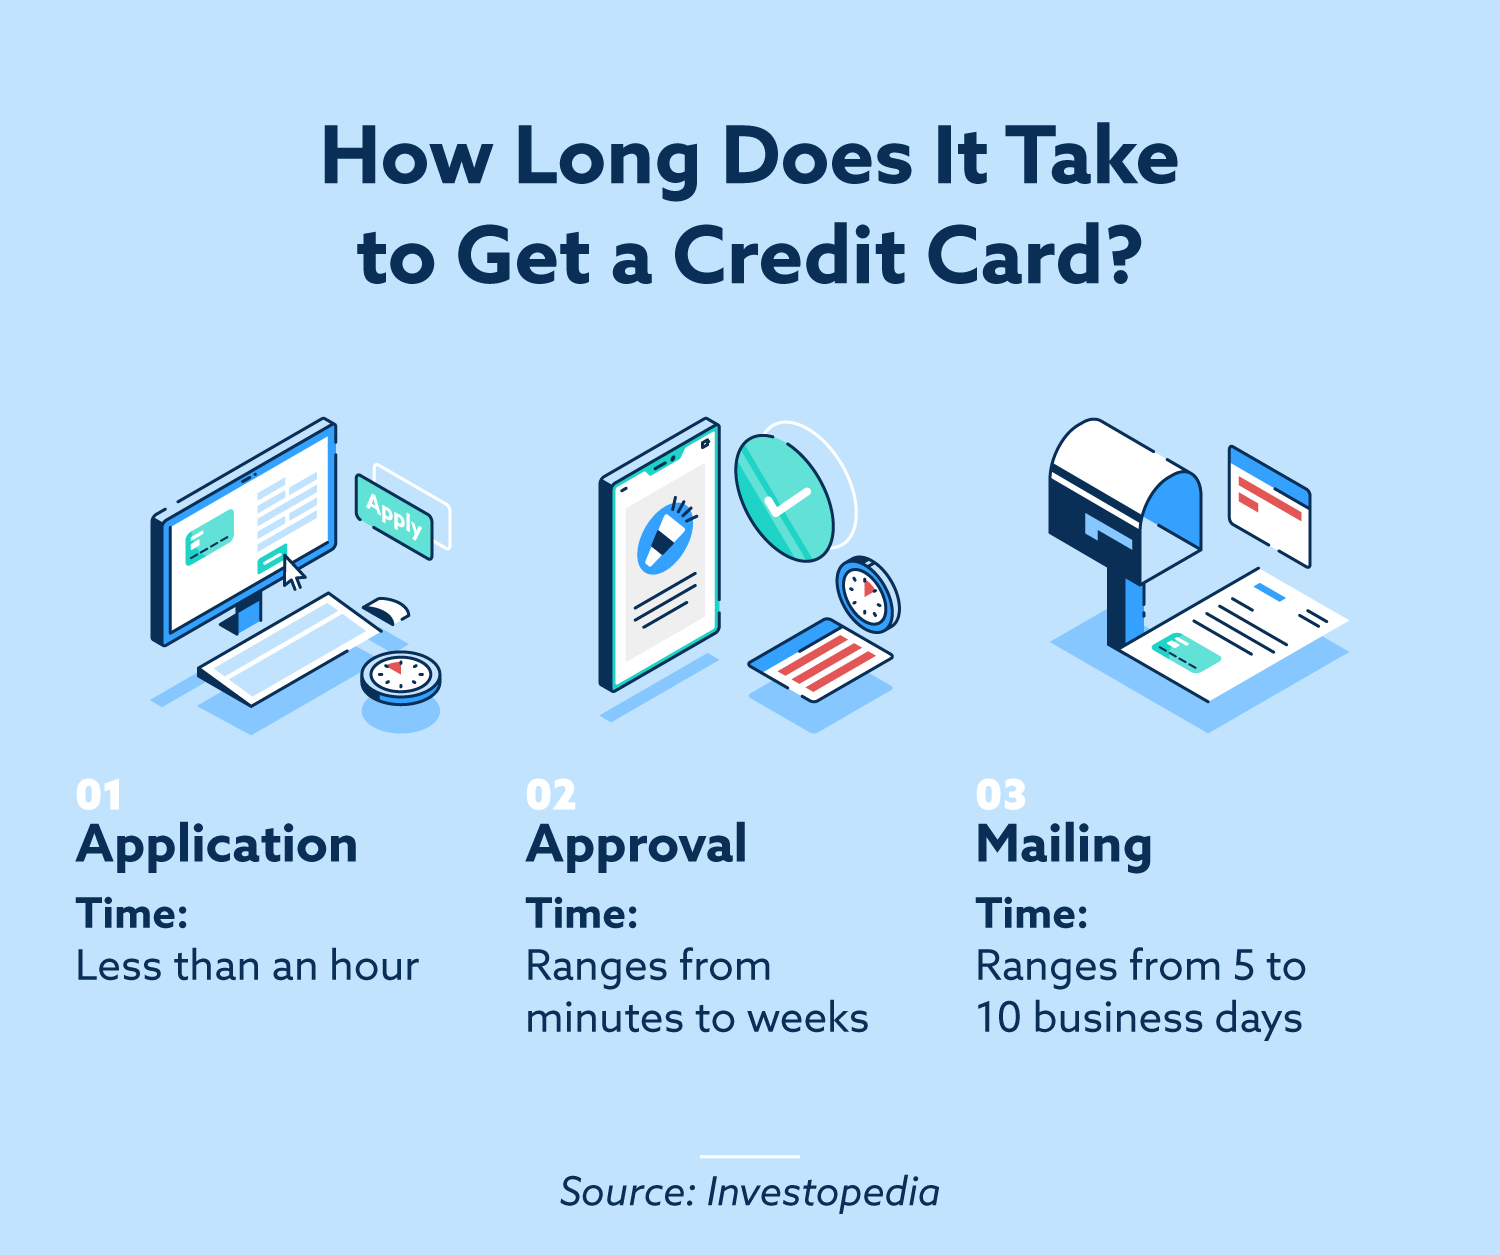 How long does it take to get a credit card? Application time takes less than  hour, approval time ranges from minutes to weeks, and mailing time ranges from 5 to 10 business days.